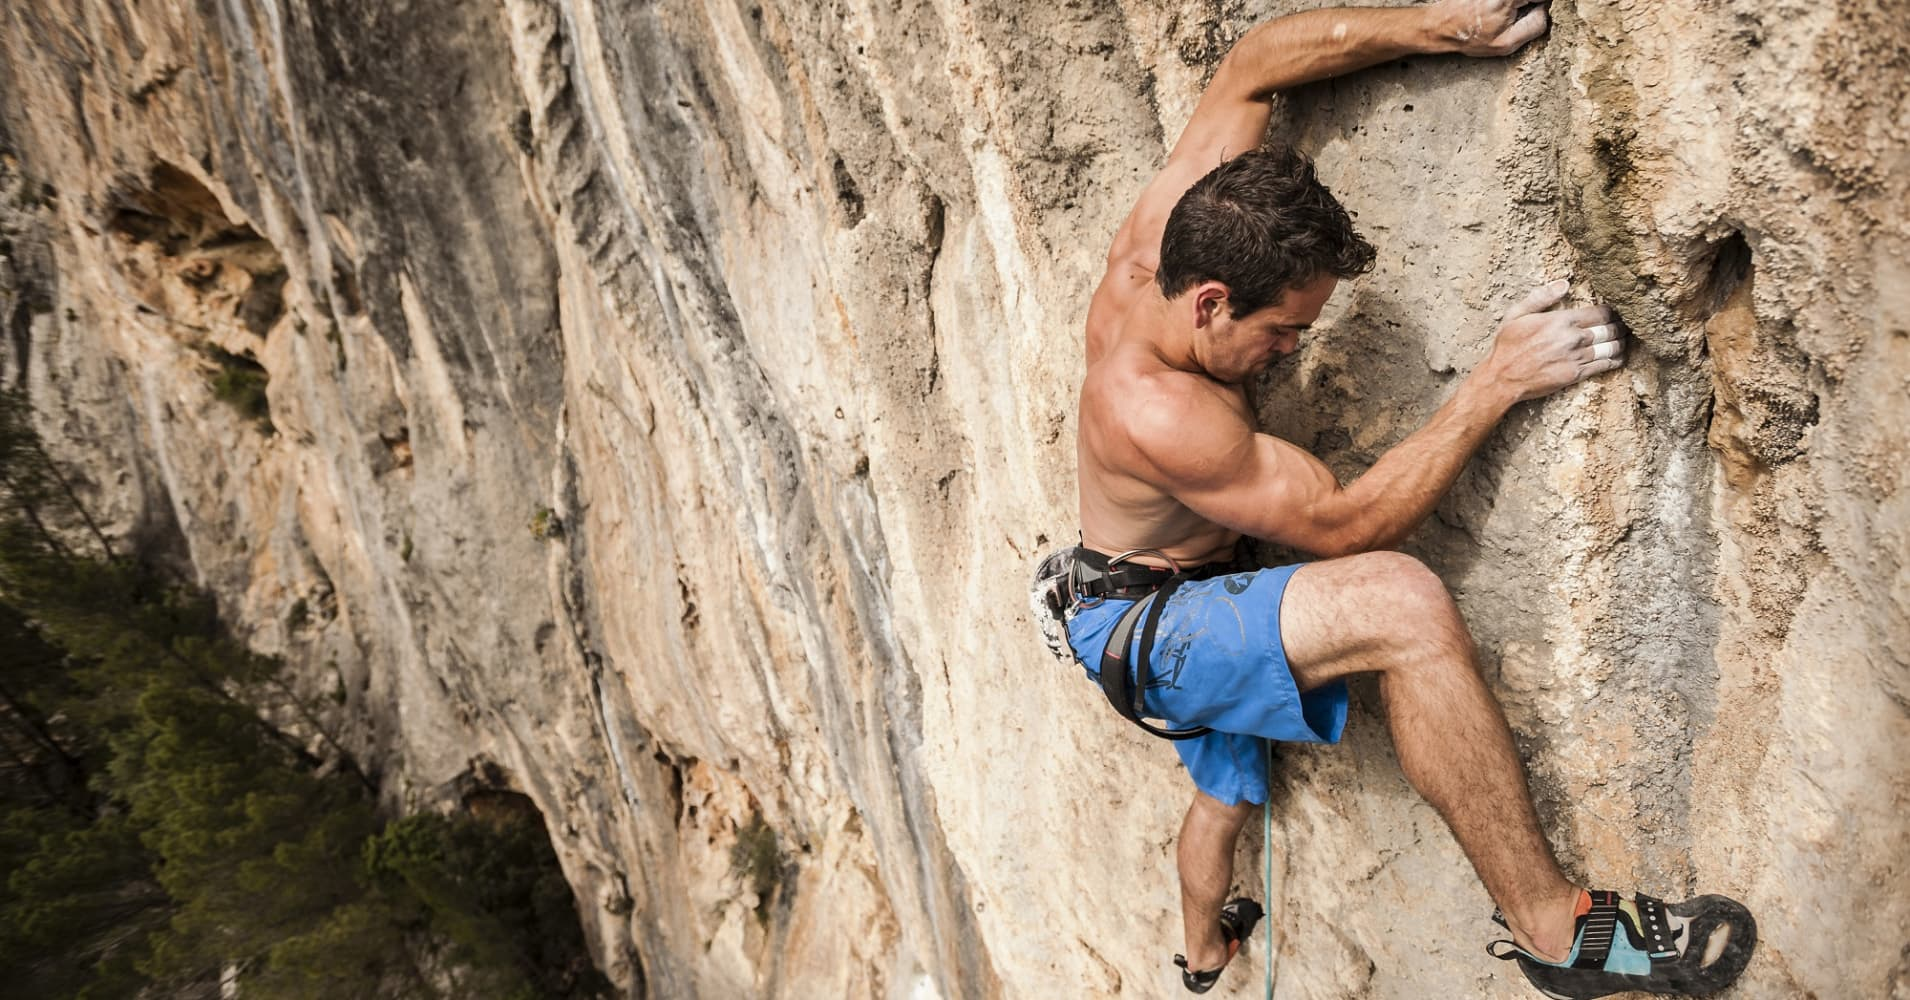 Italian climber Lucas Iribarren climbs a project route on limestone during a climbing trip to Mallorca, Spain.